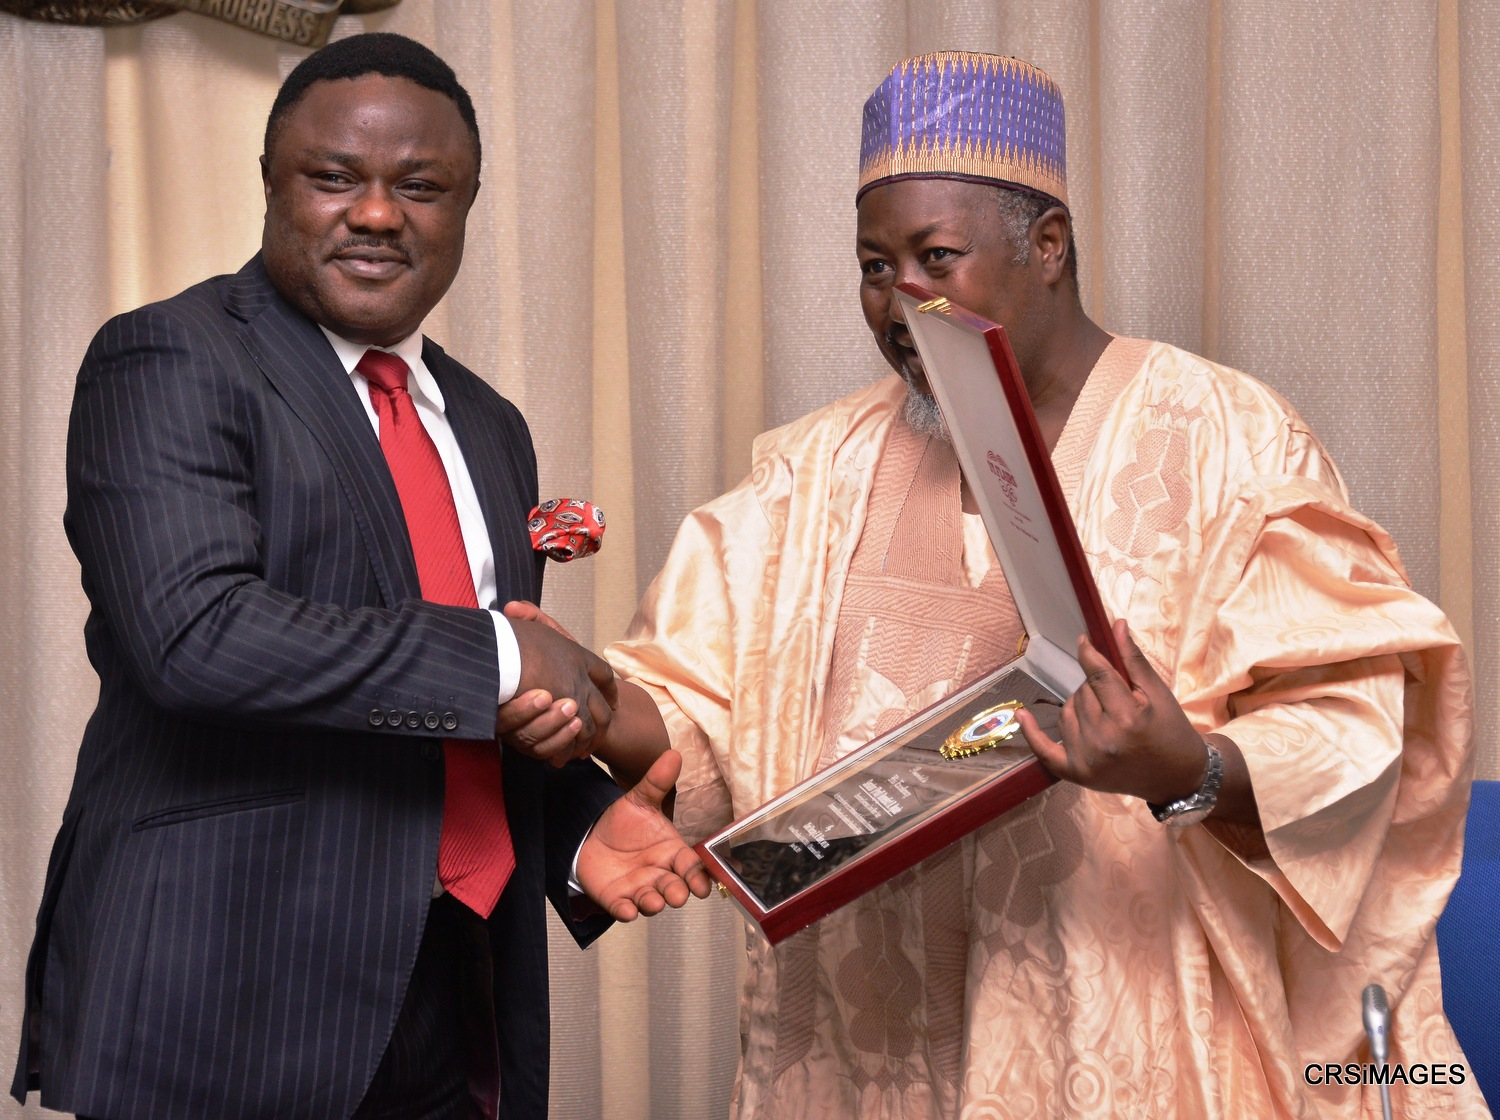 Cross River State Governor, Senator Ben Ayade being presented with a plague by Alhaji Muhammed B. Abubakar, Governor of Jigawa State and immediate past National President of Nigerian Association of Chambers of Commerce, Industry, Mines and Agriculture (NACCIMA) during a courtesy call in Government House Calabar, today